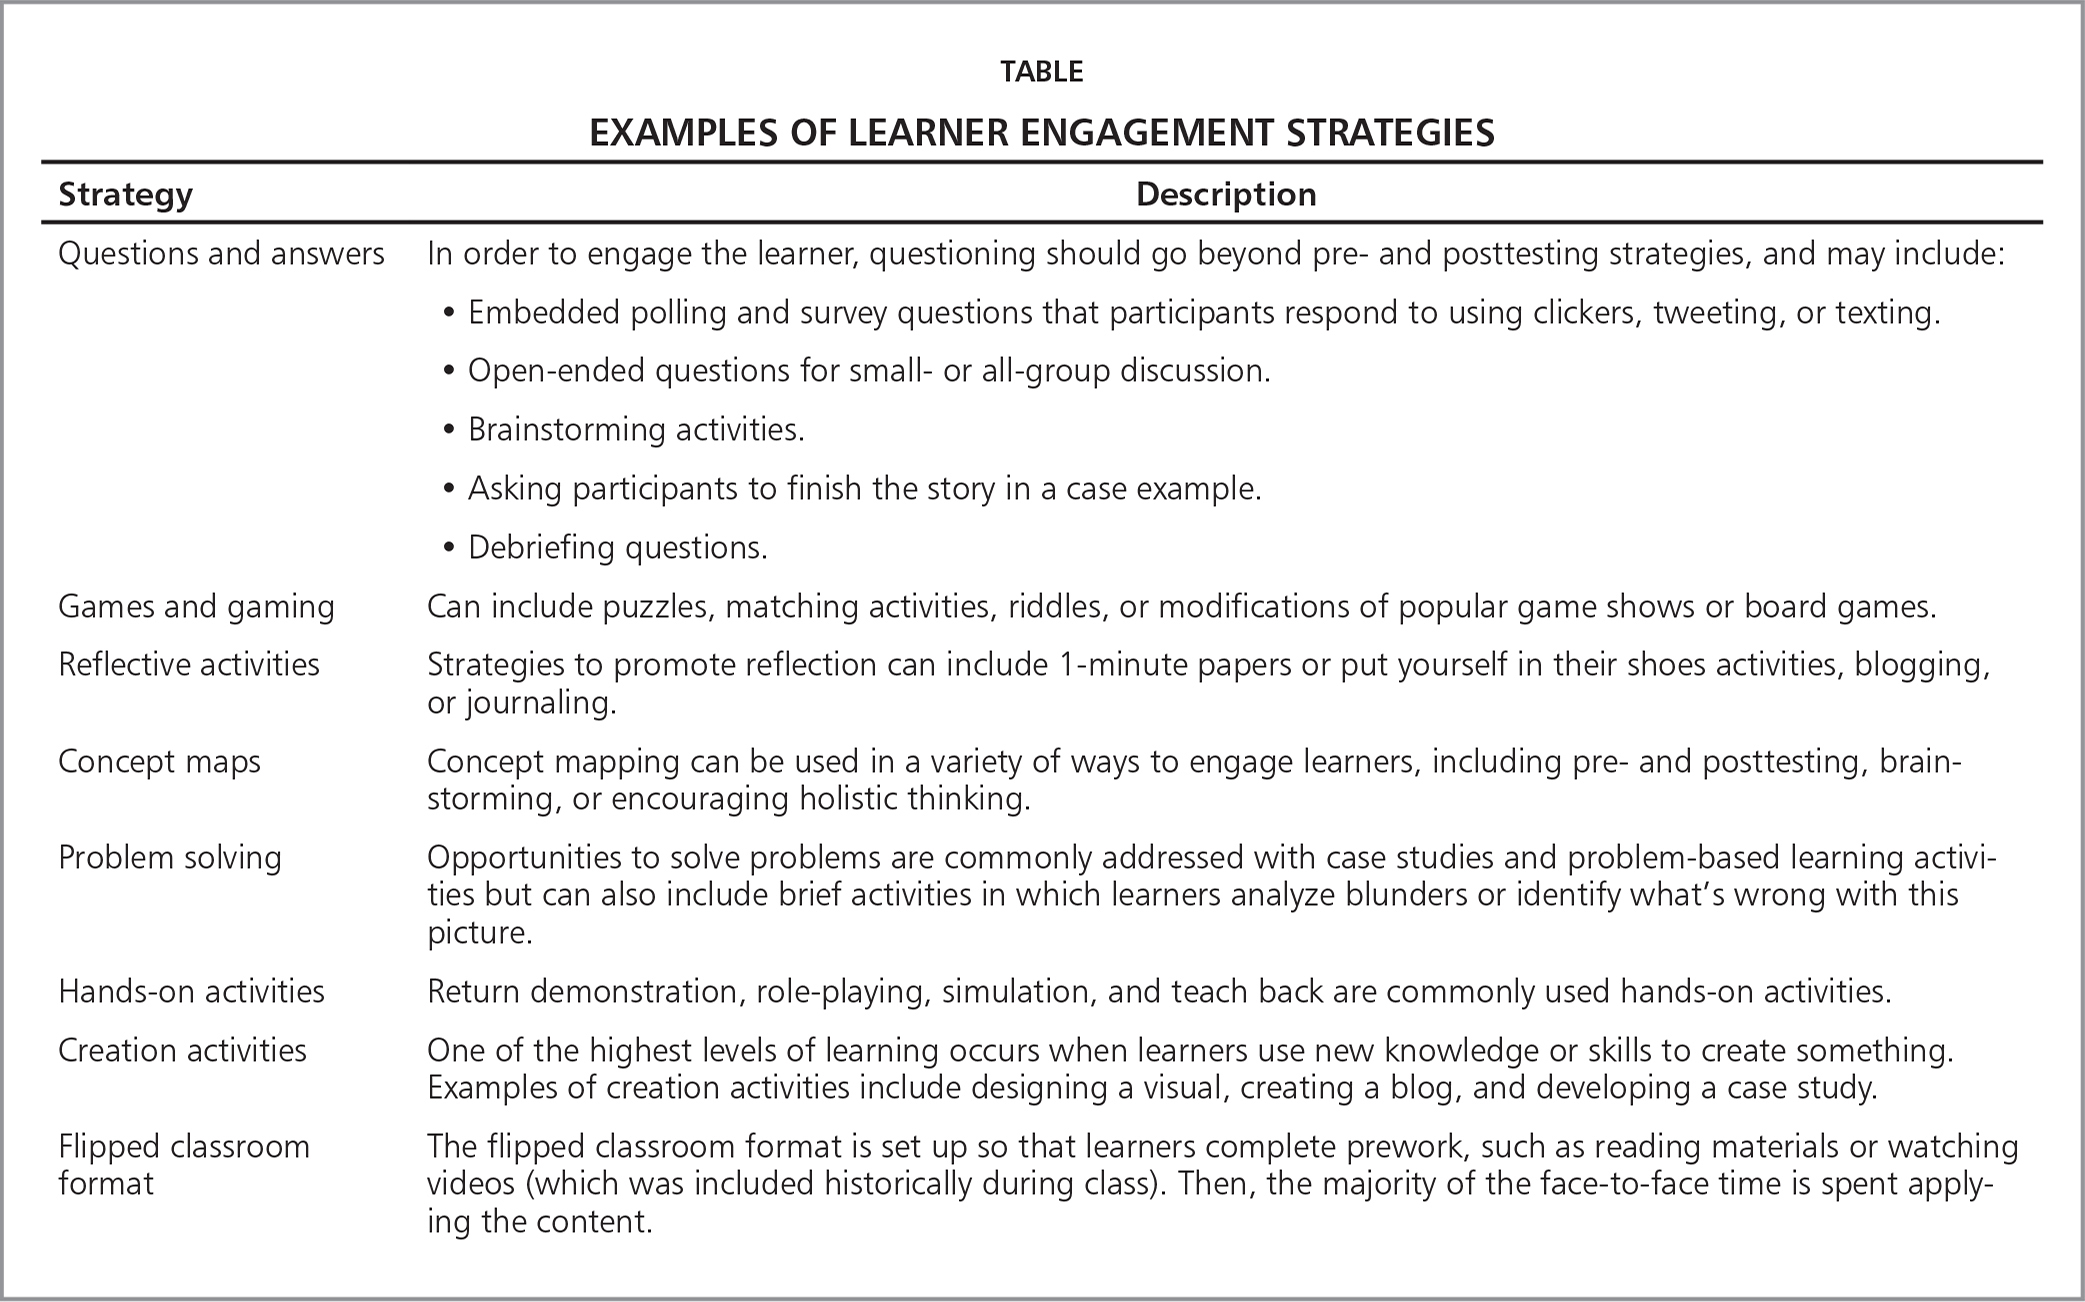 Examples of Learner Engagement Strategies